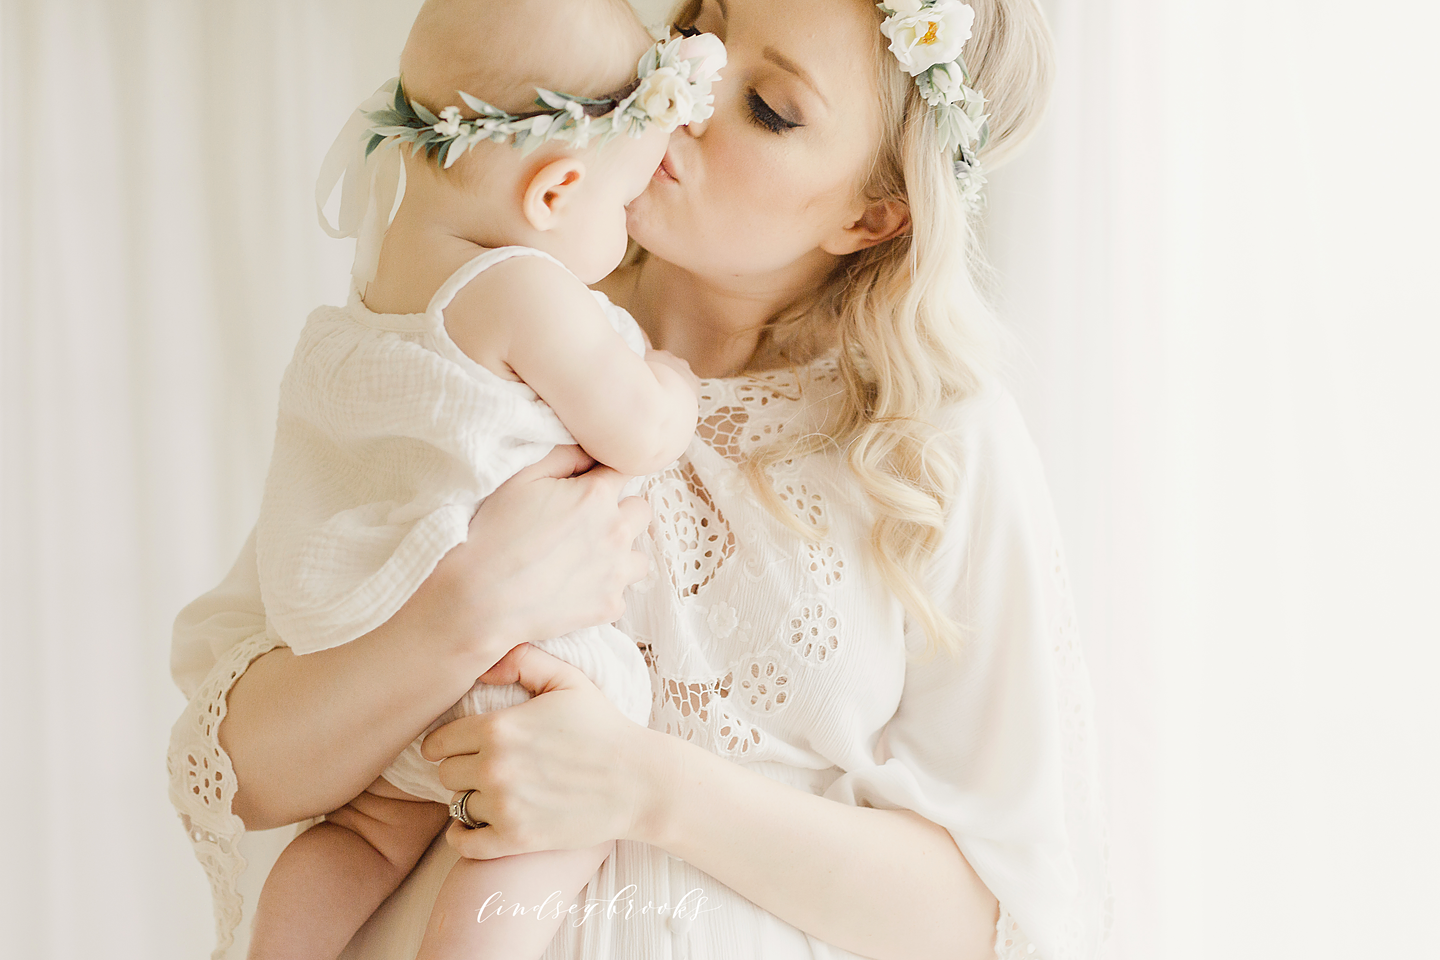 oklahoma_city_okc_mommy_and_me_motherhood_photographer_baby_child_flower_crown_halo_six_months_organic_simple_photos_12.png